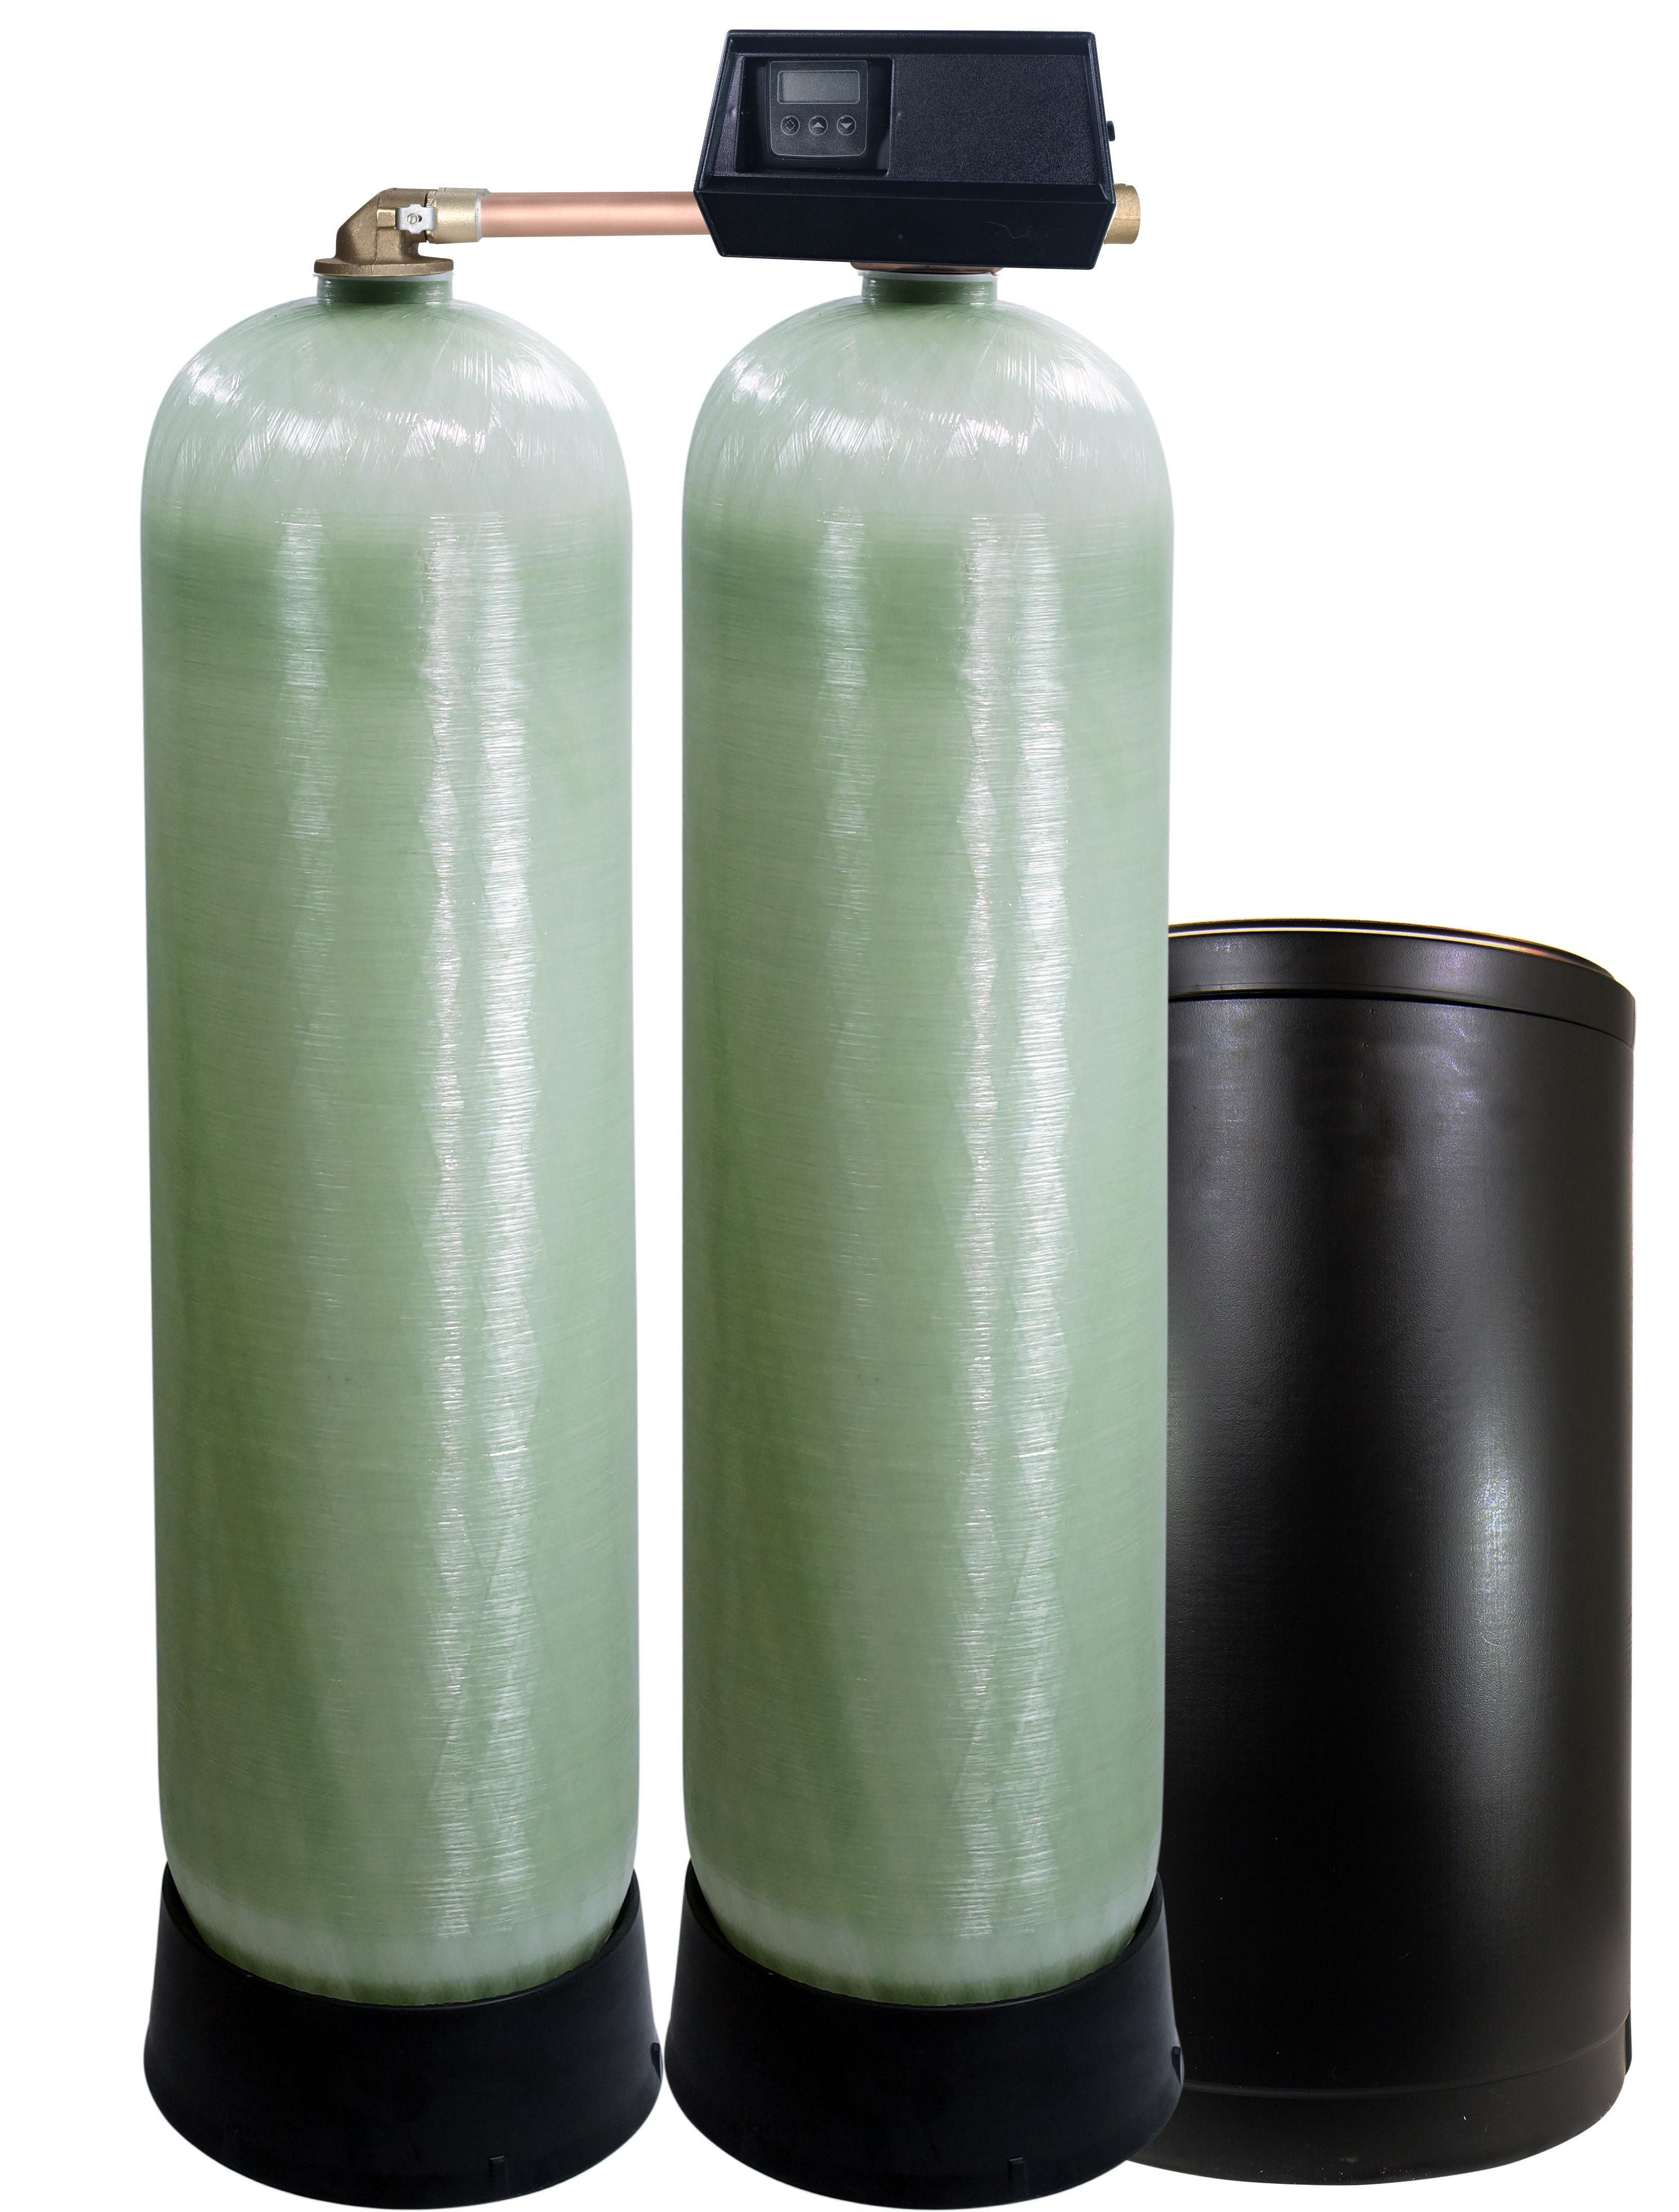 Us Water 1 5 Inch Twin Alternating Water Softener Up To